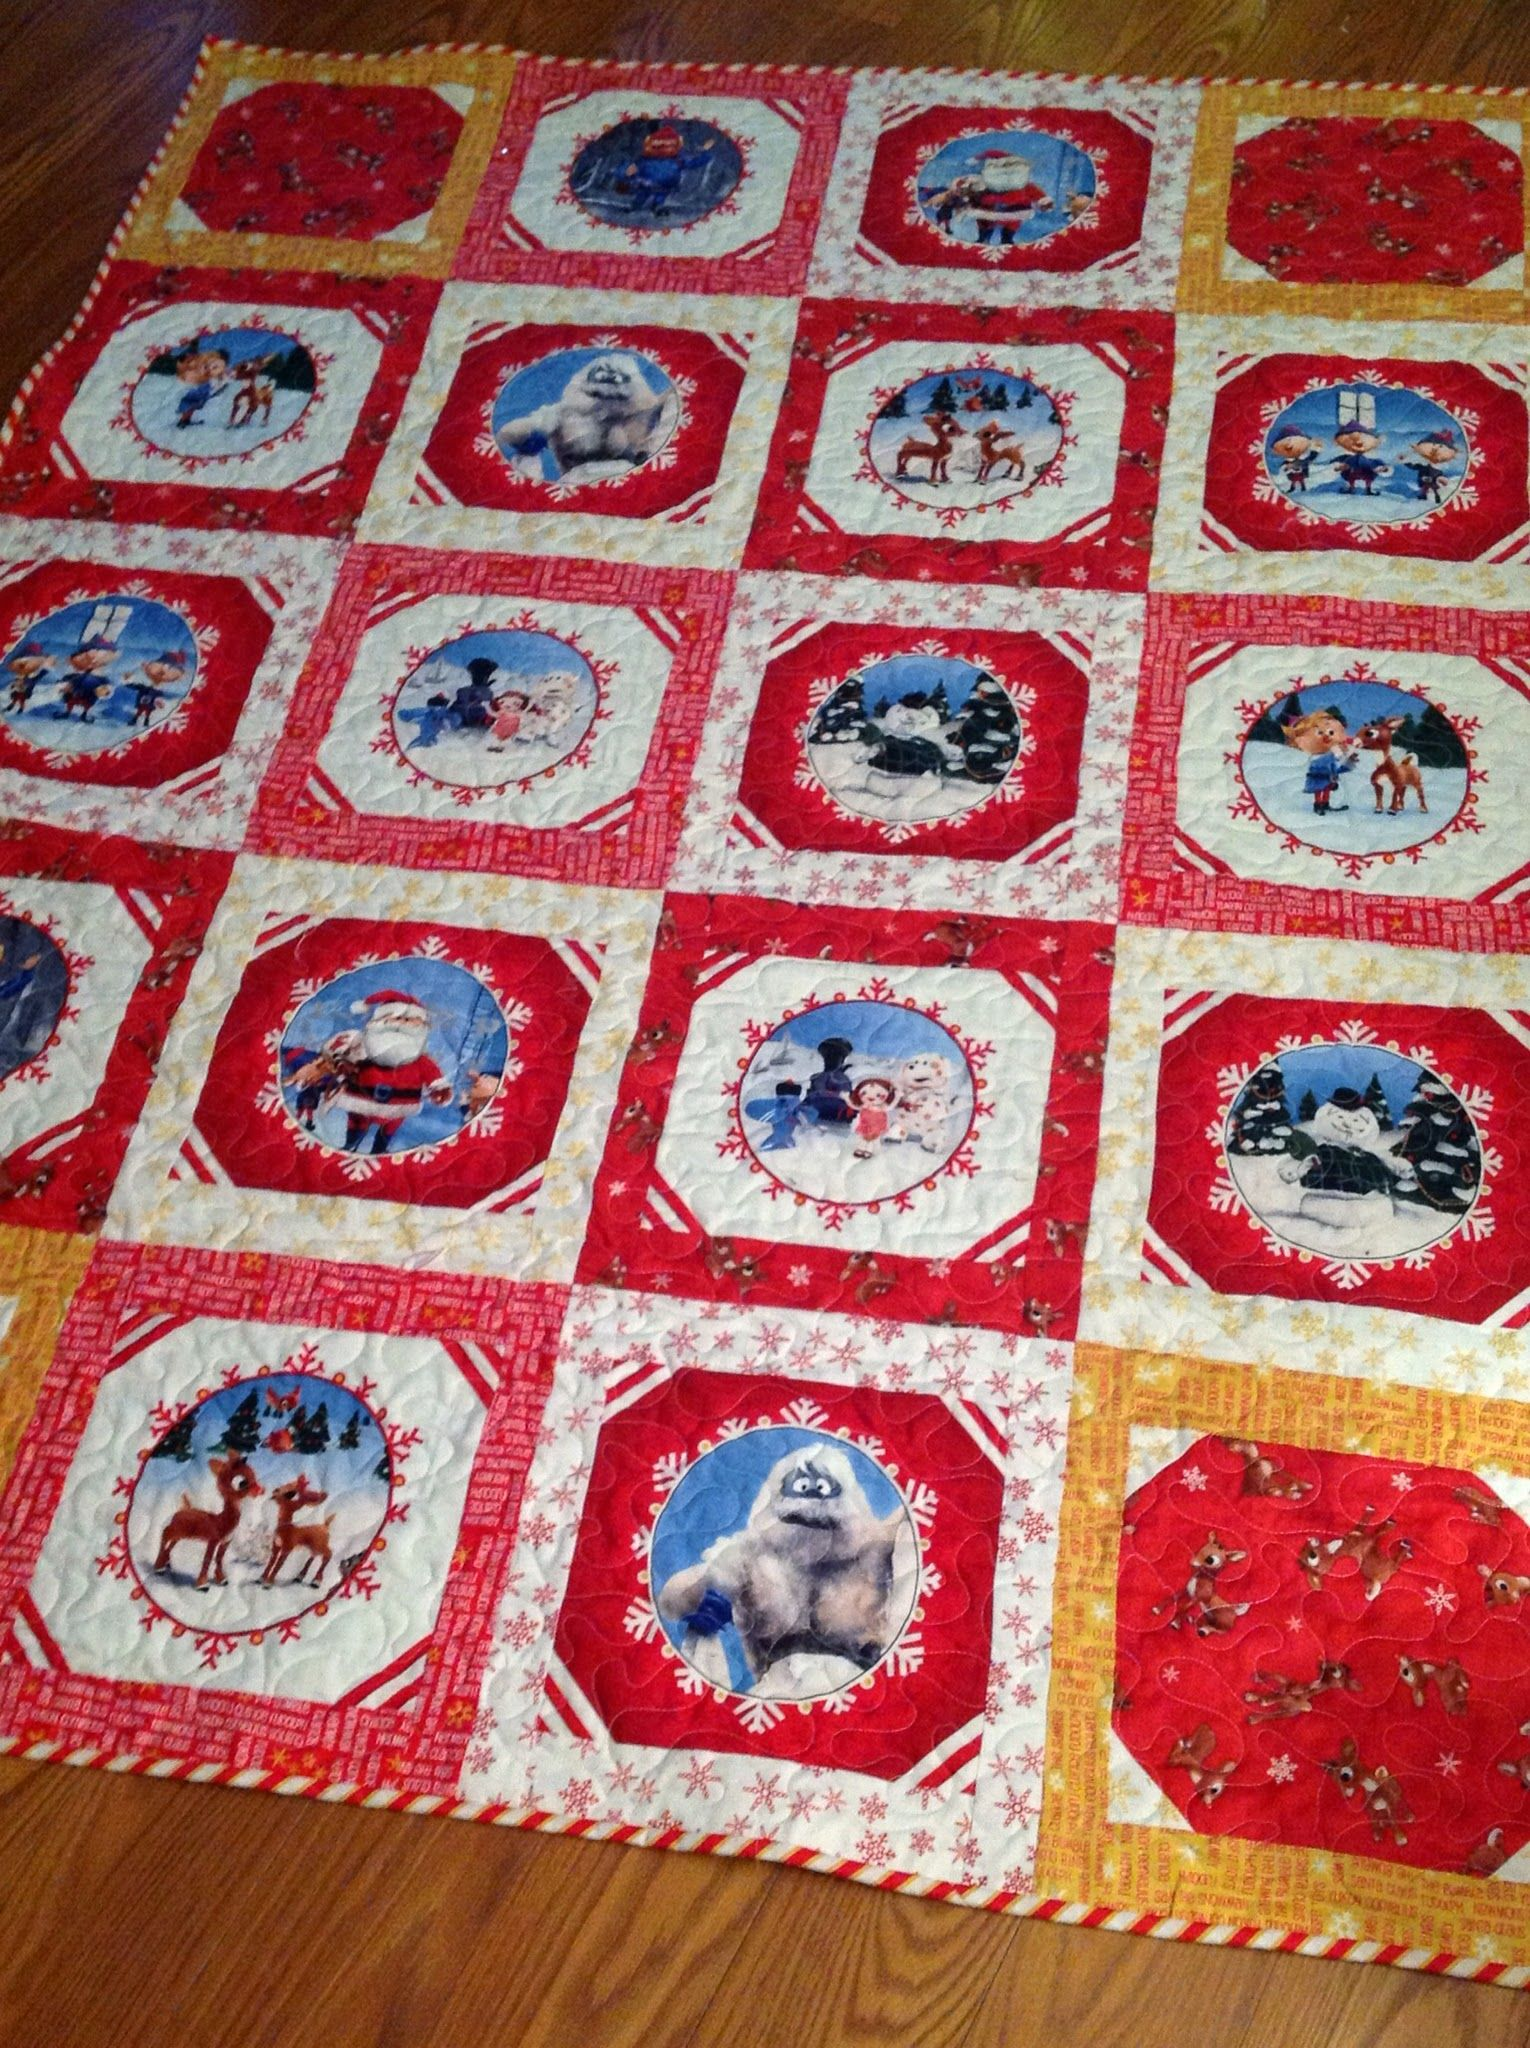 rudolph the red nosed reindeer quilt pattern - Google Search ... : reindeer quilt patterns - Adamdwight.com